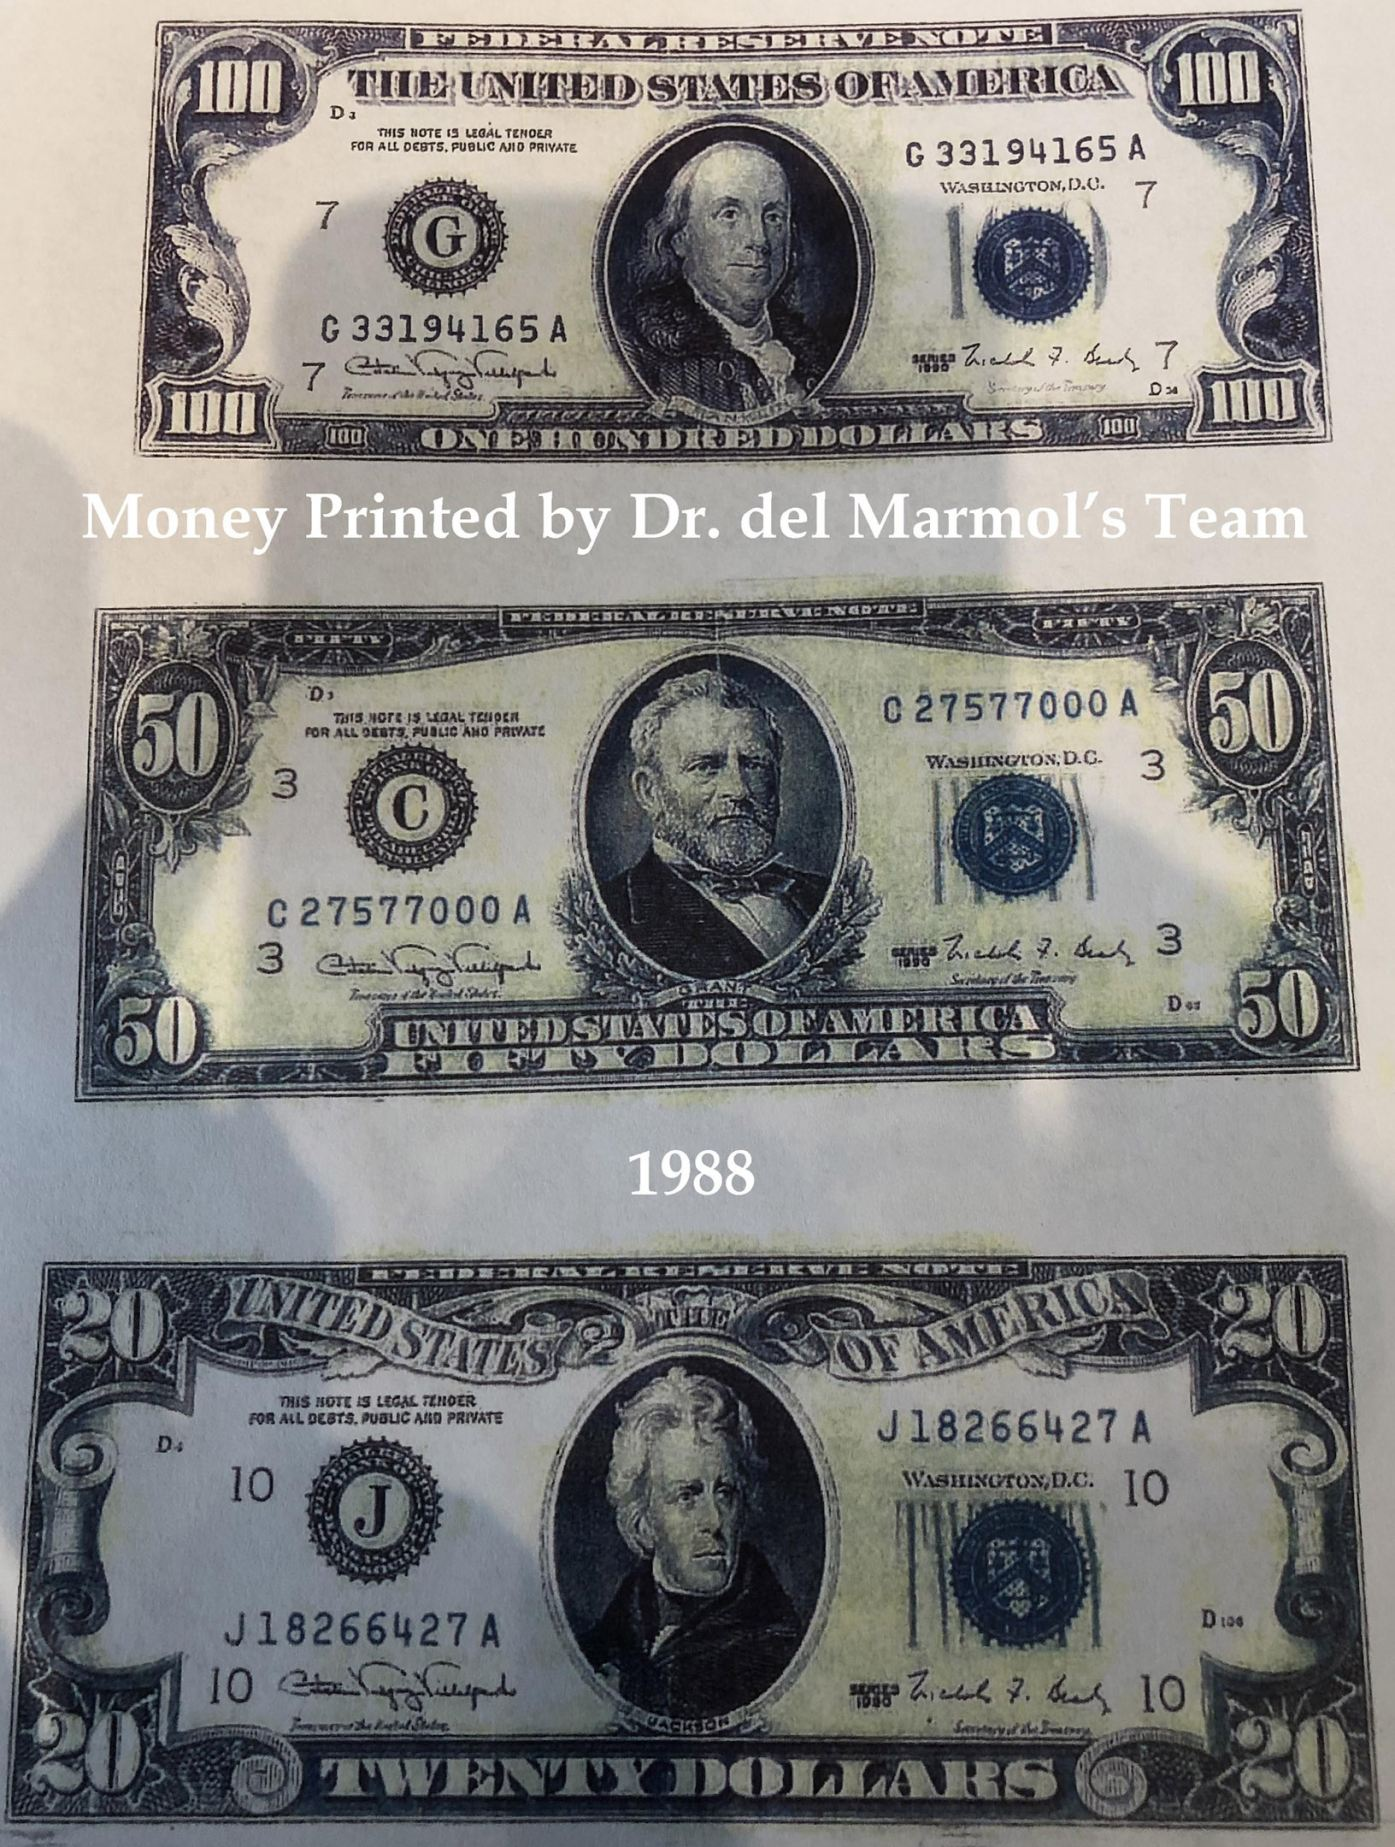 Money printed by Dr. del Marmol's Team in 1988